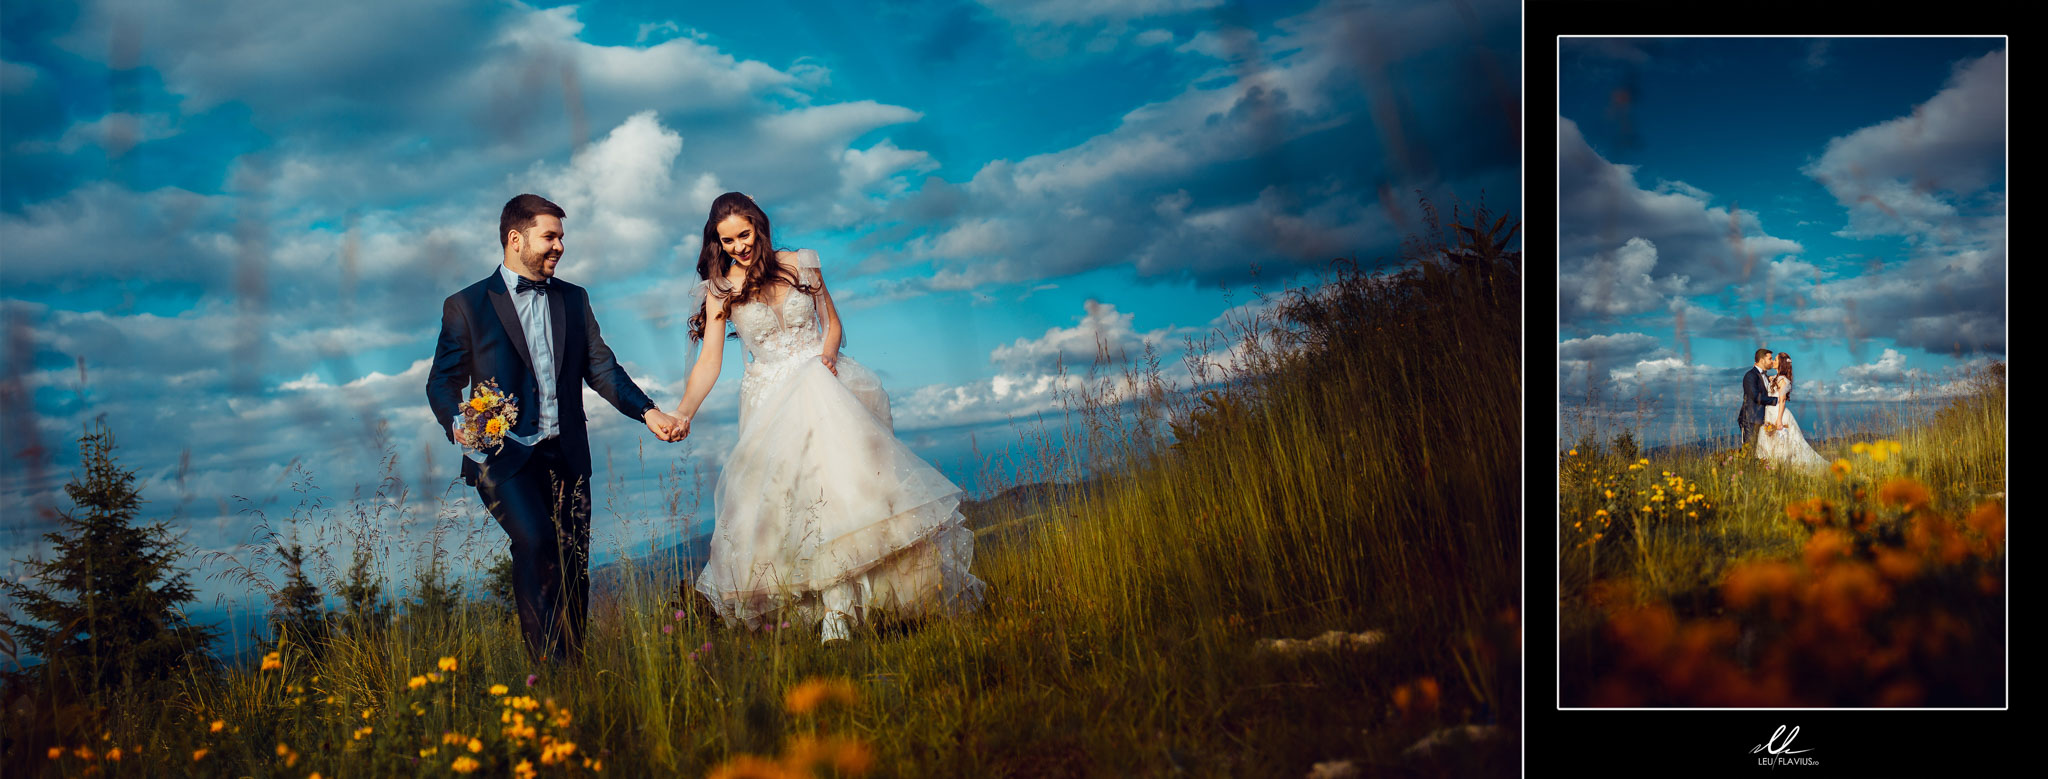 Colaj 03 - Trash the Dress - Cosmina si Ionut